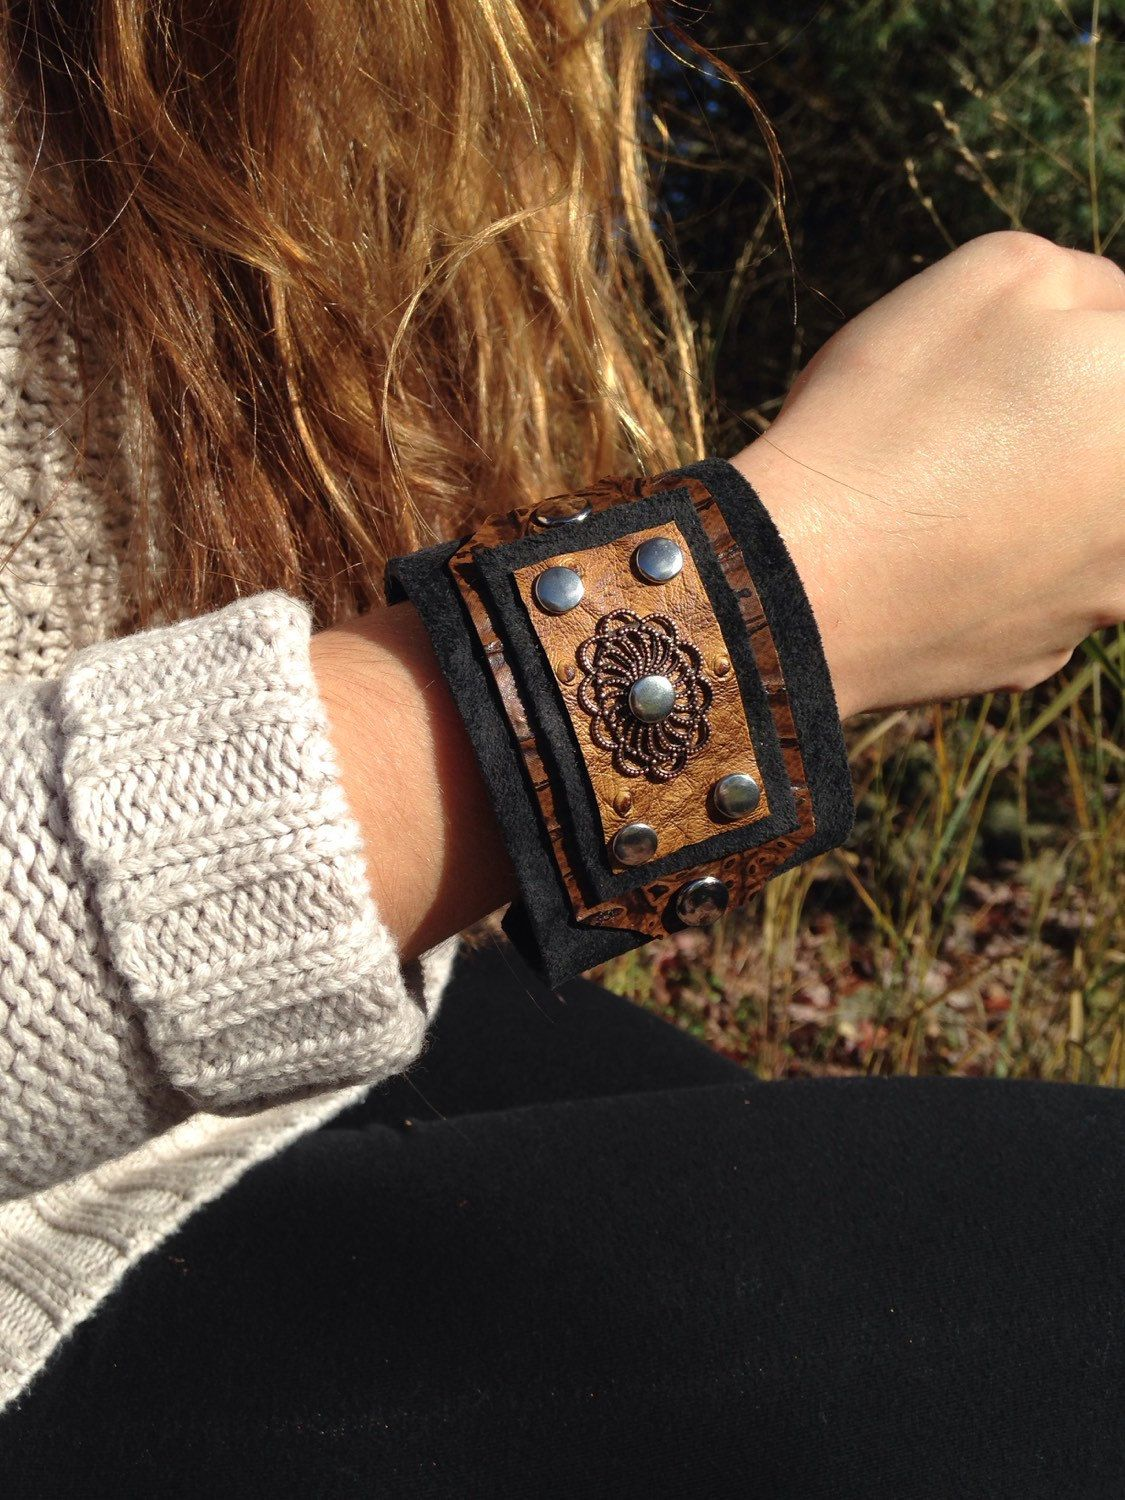 Metal bangle with genuine leather jewelry piece in cognac cuff gift for women upcycled jewelry